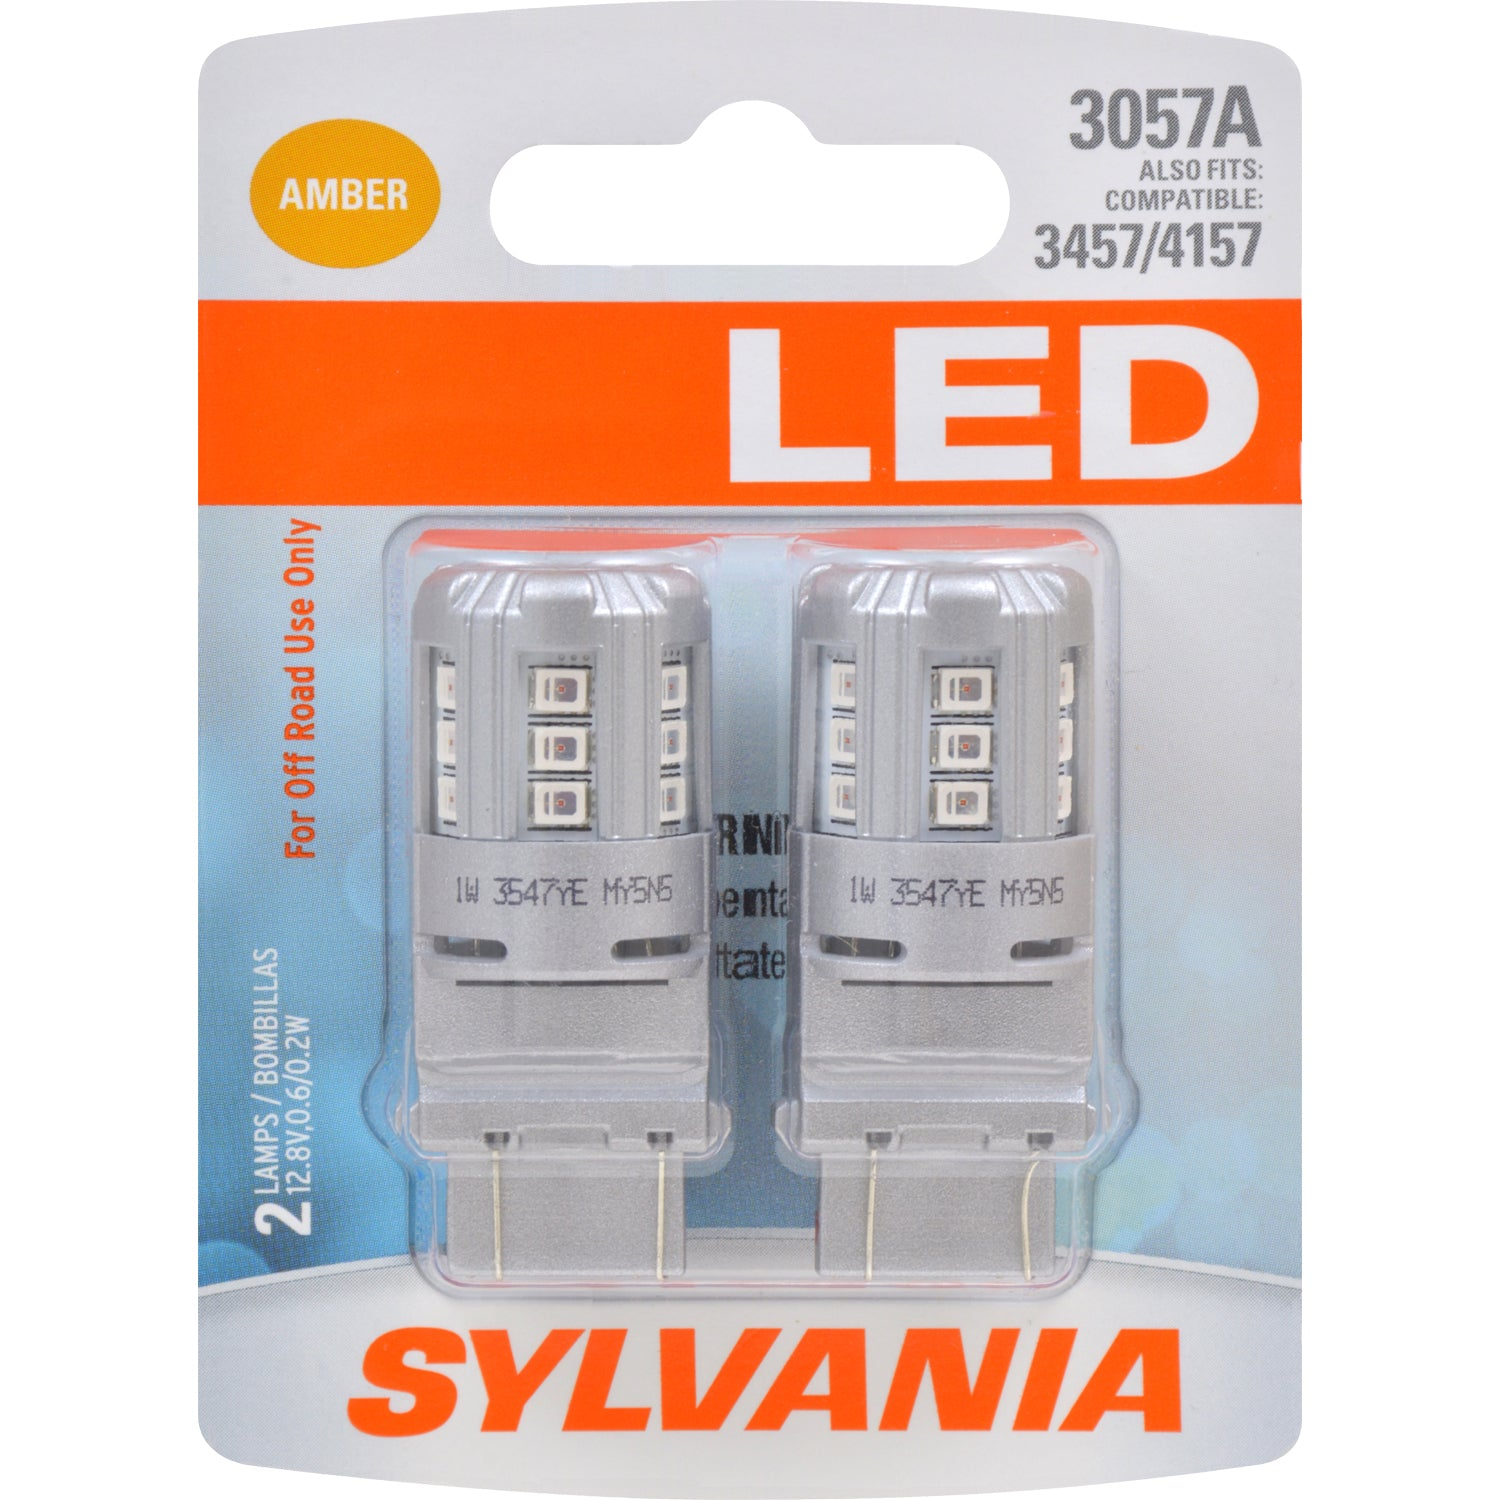 2-PK SYLVANIA 3057 Amber LED Automotive Bulb